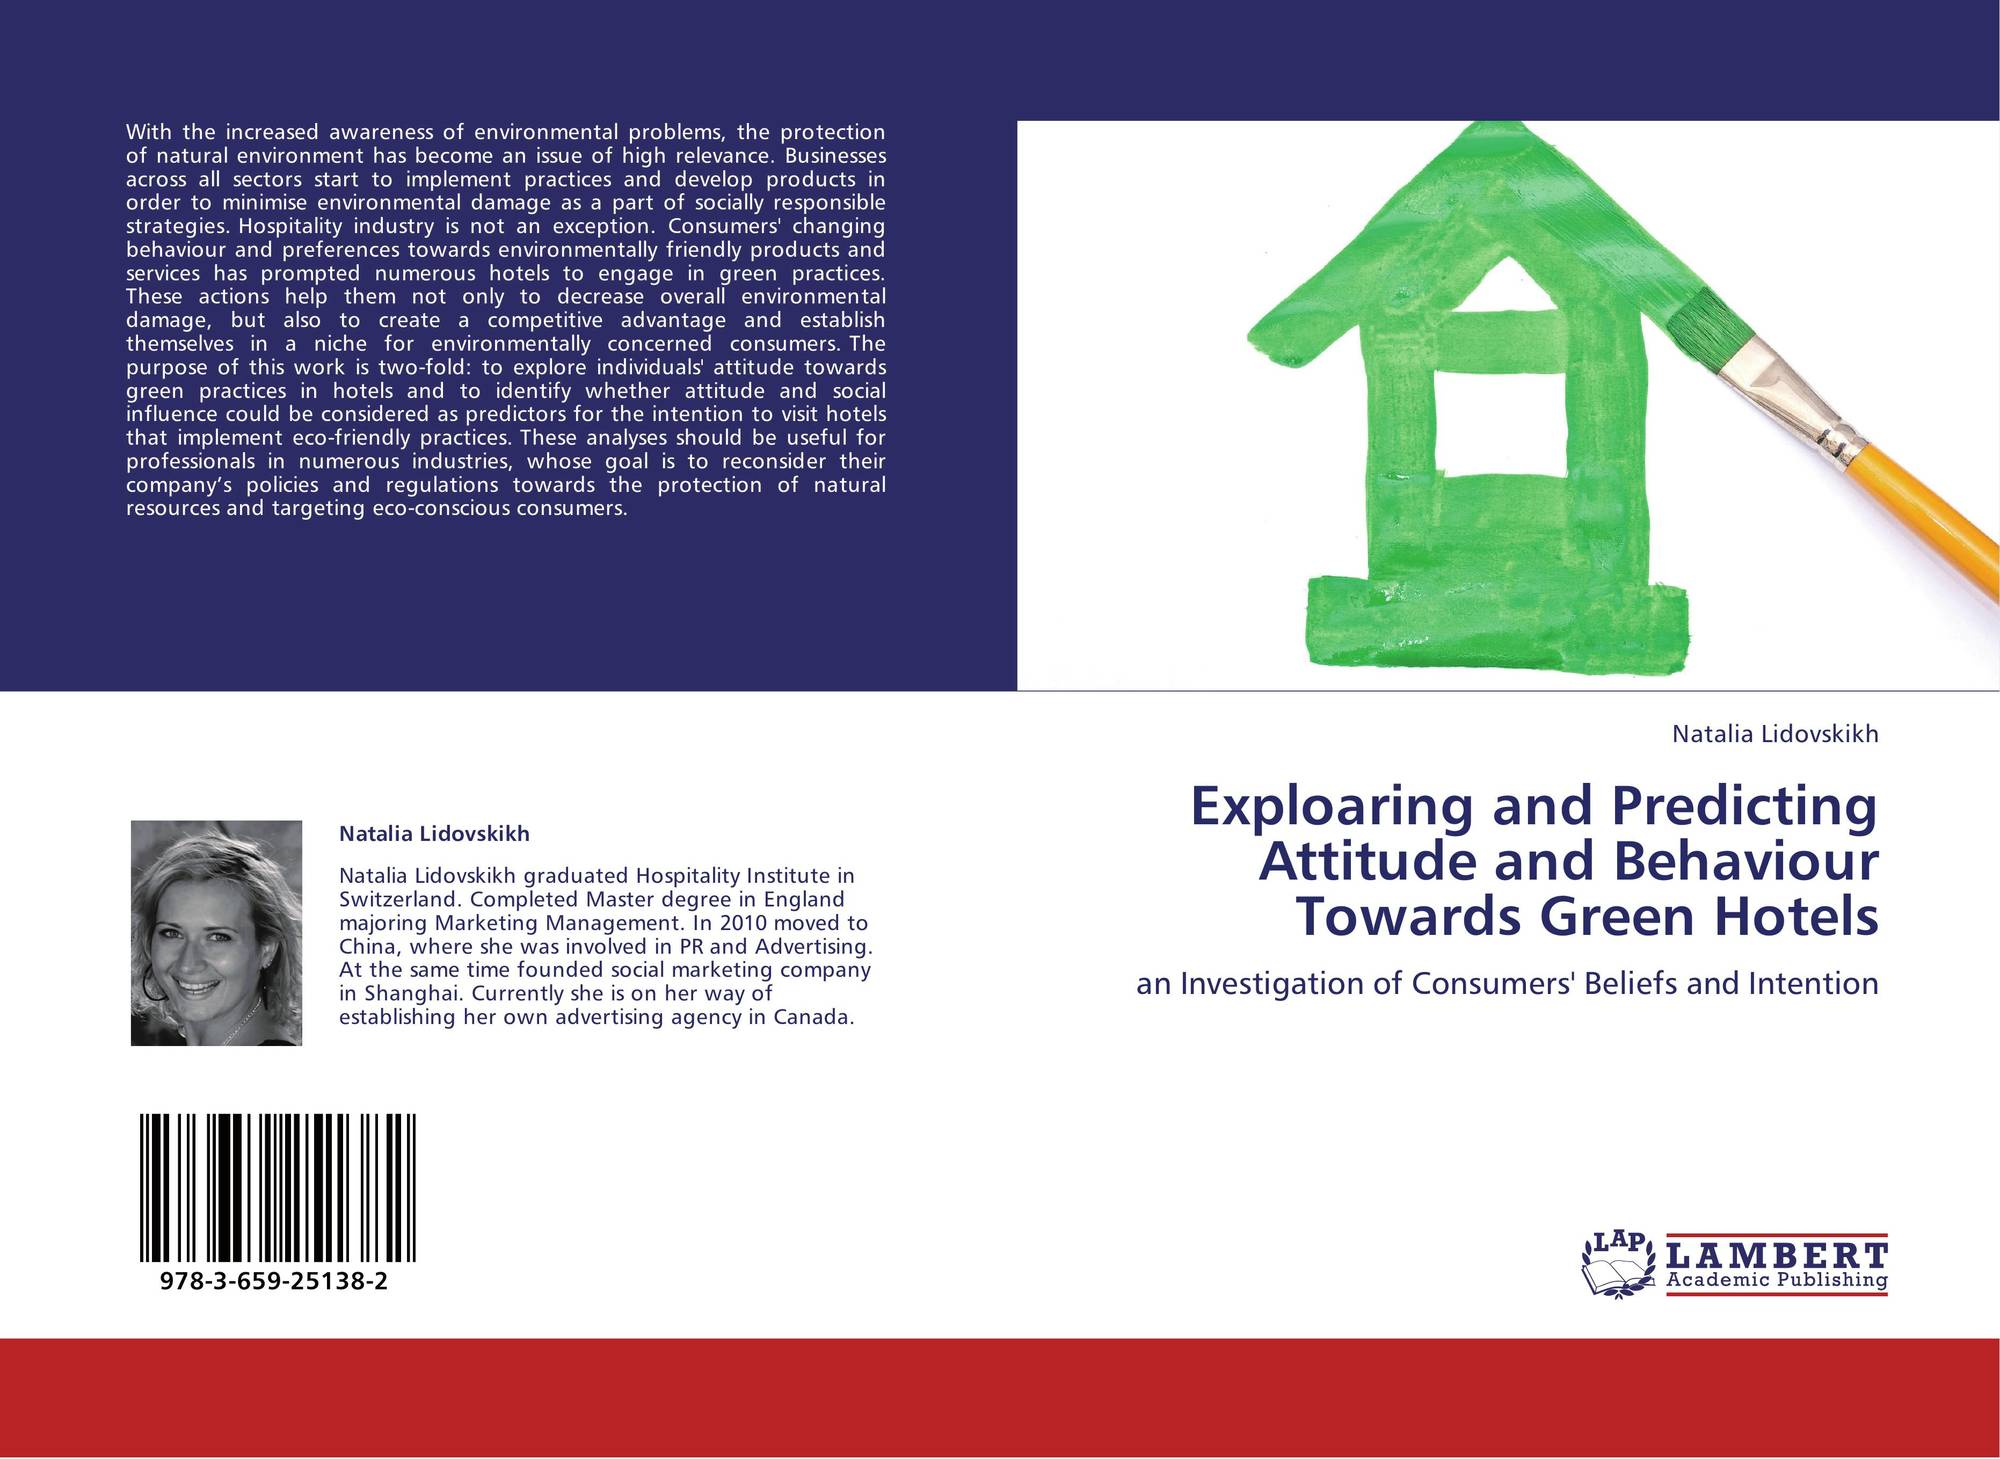 consumer behaviour towards environment friendly products